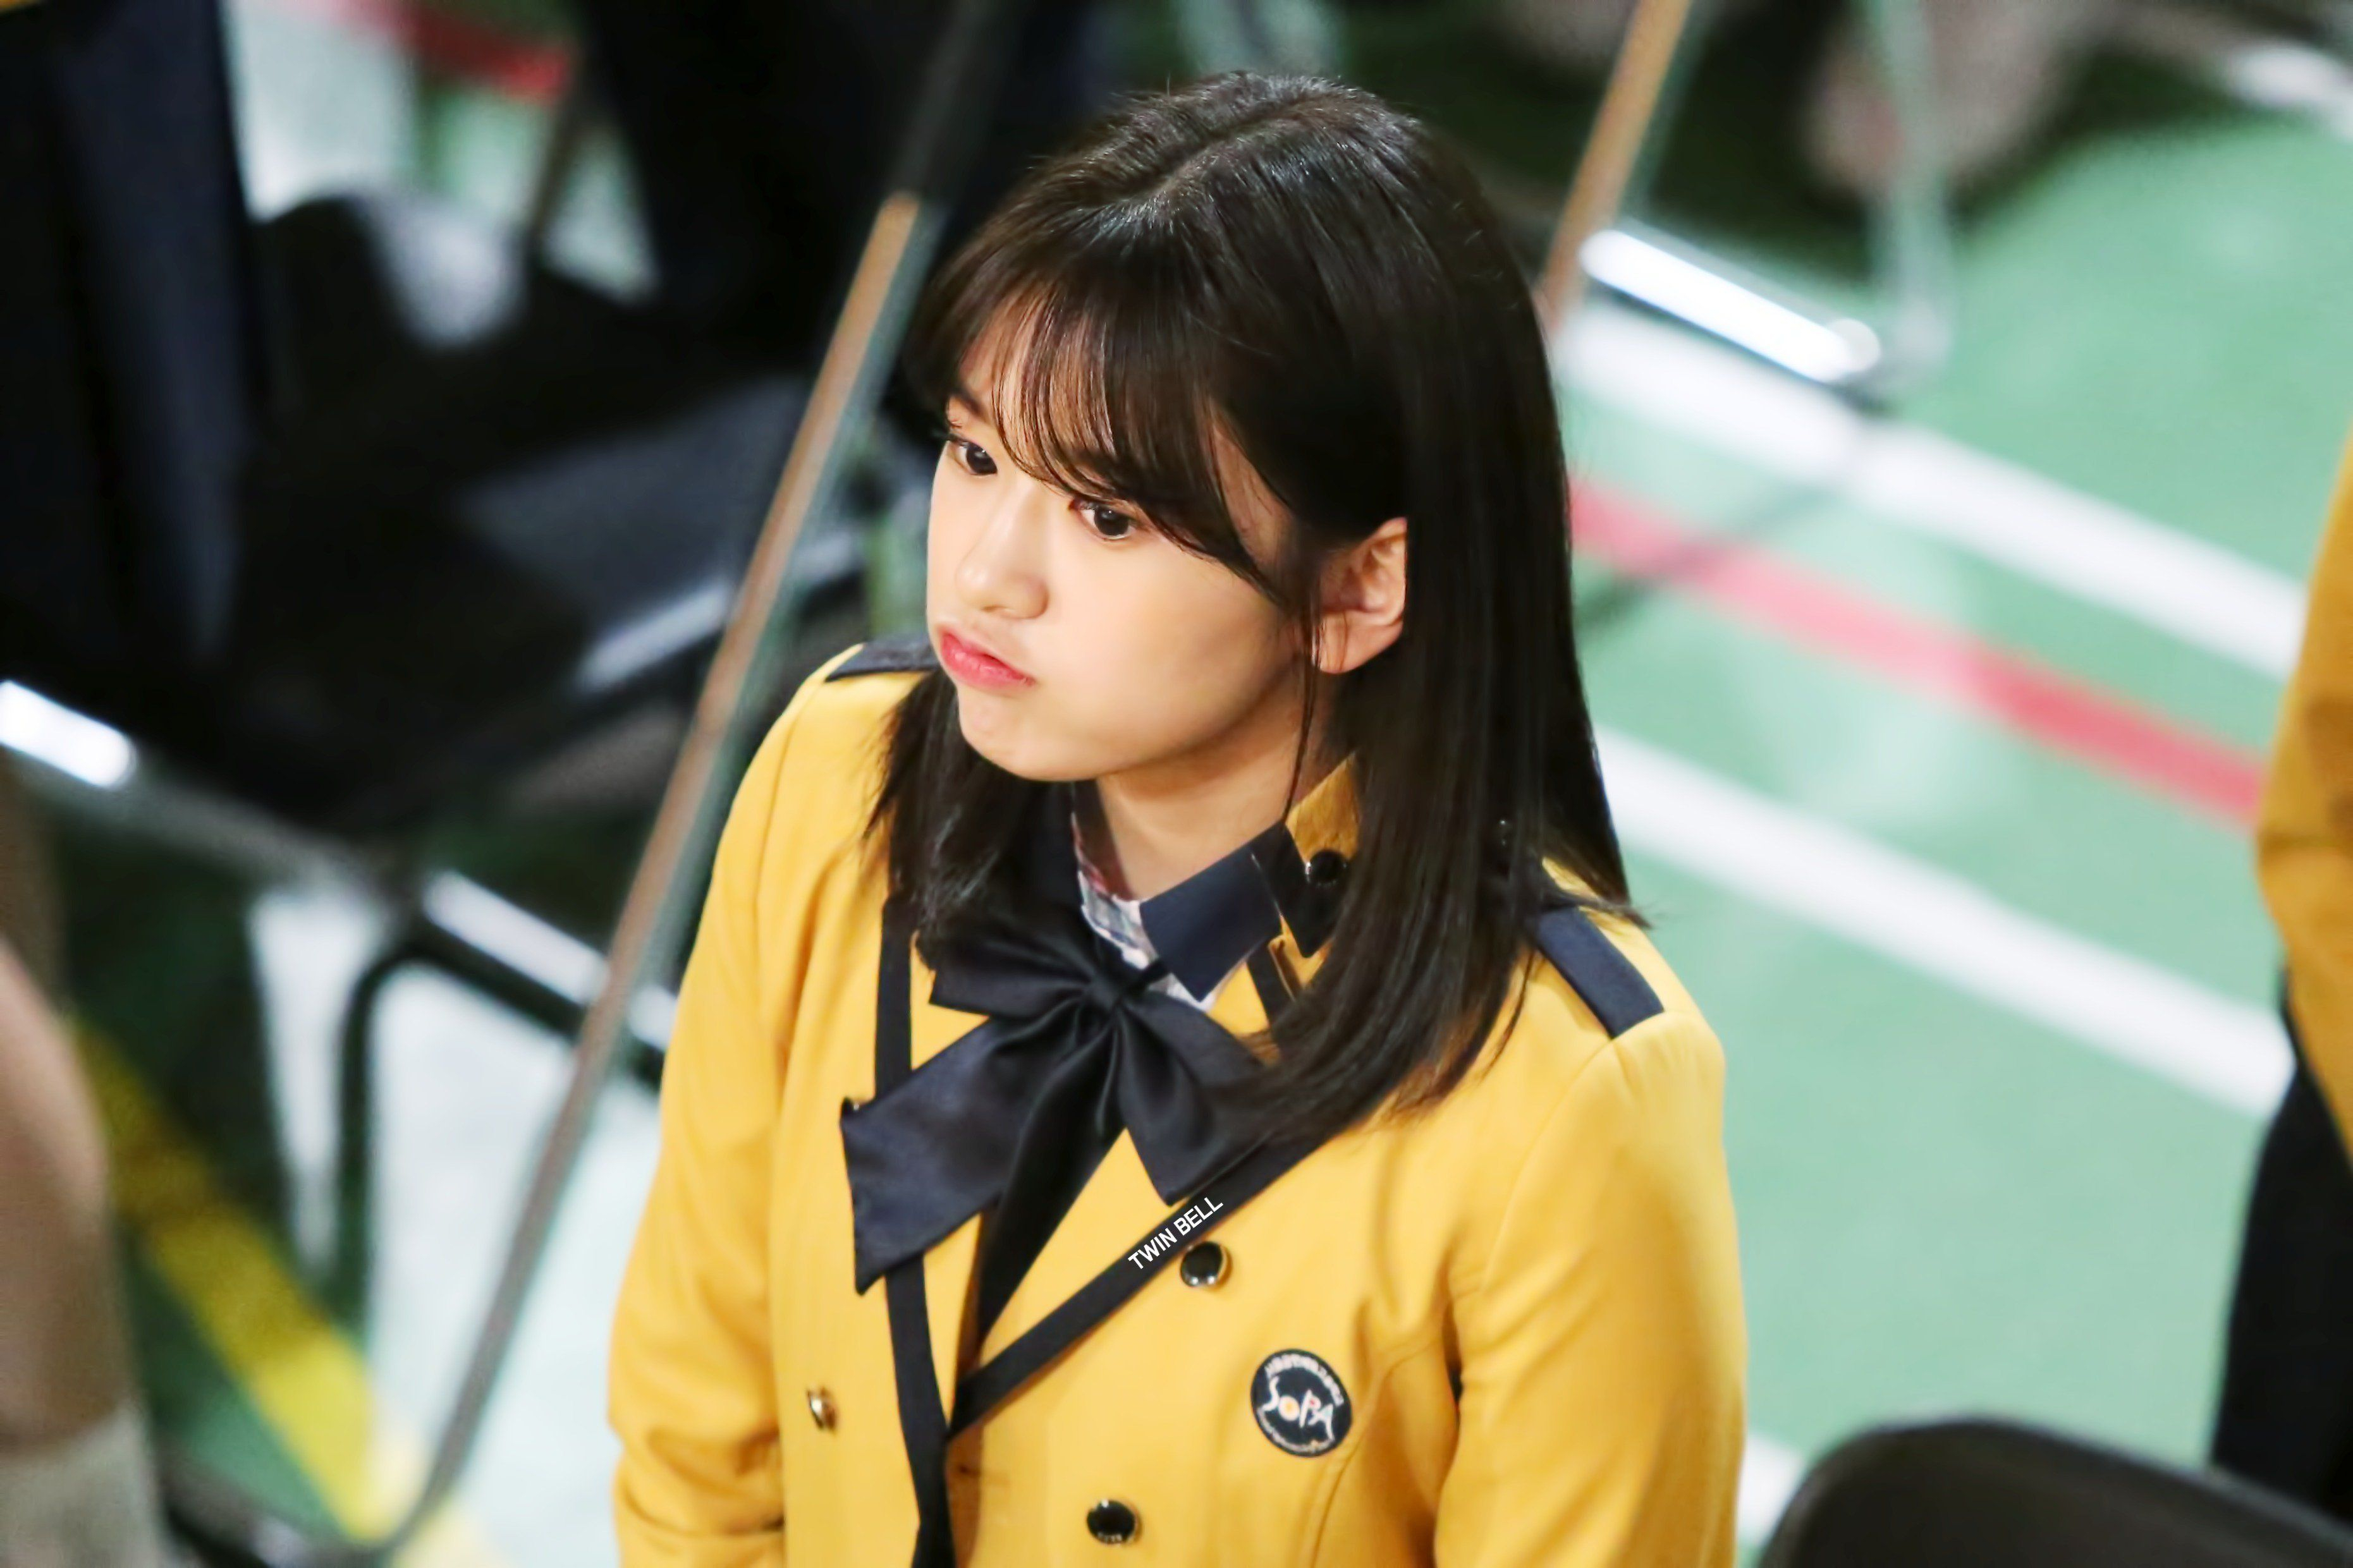 190304 Yujin's Seoul Performing Arts High School Entrance